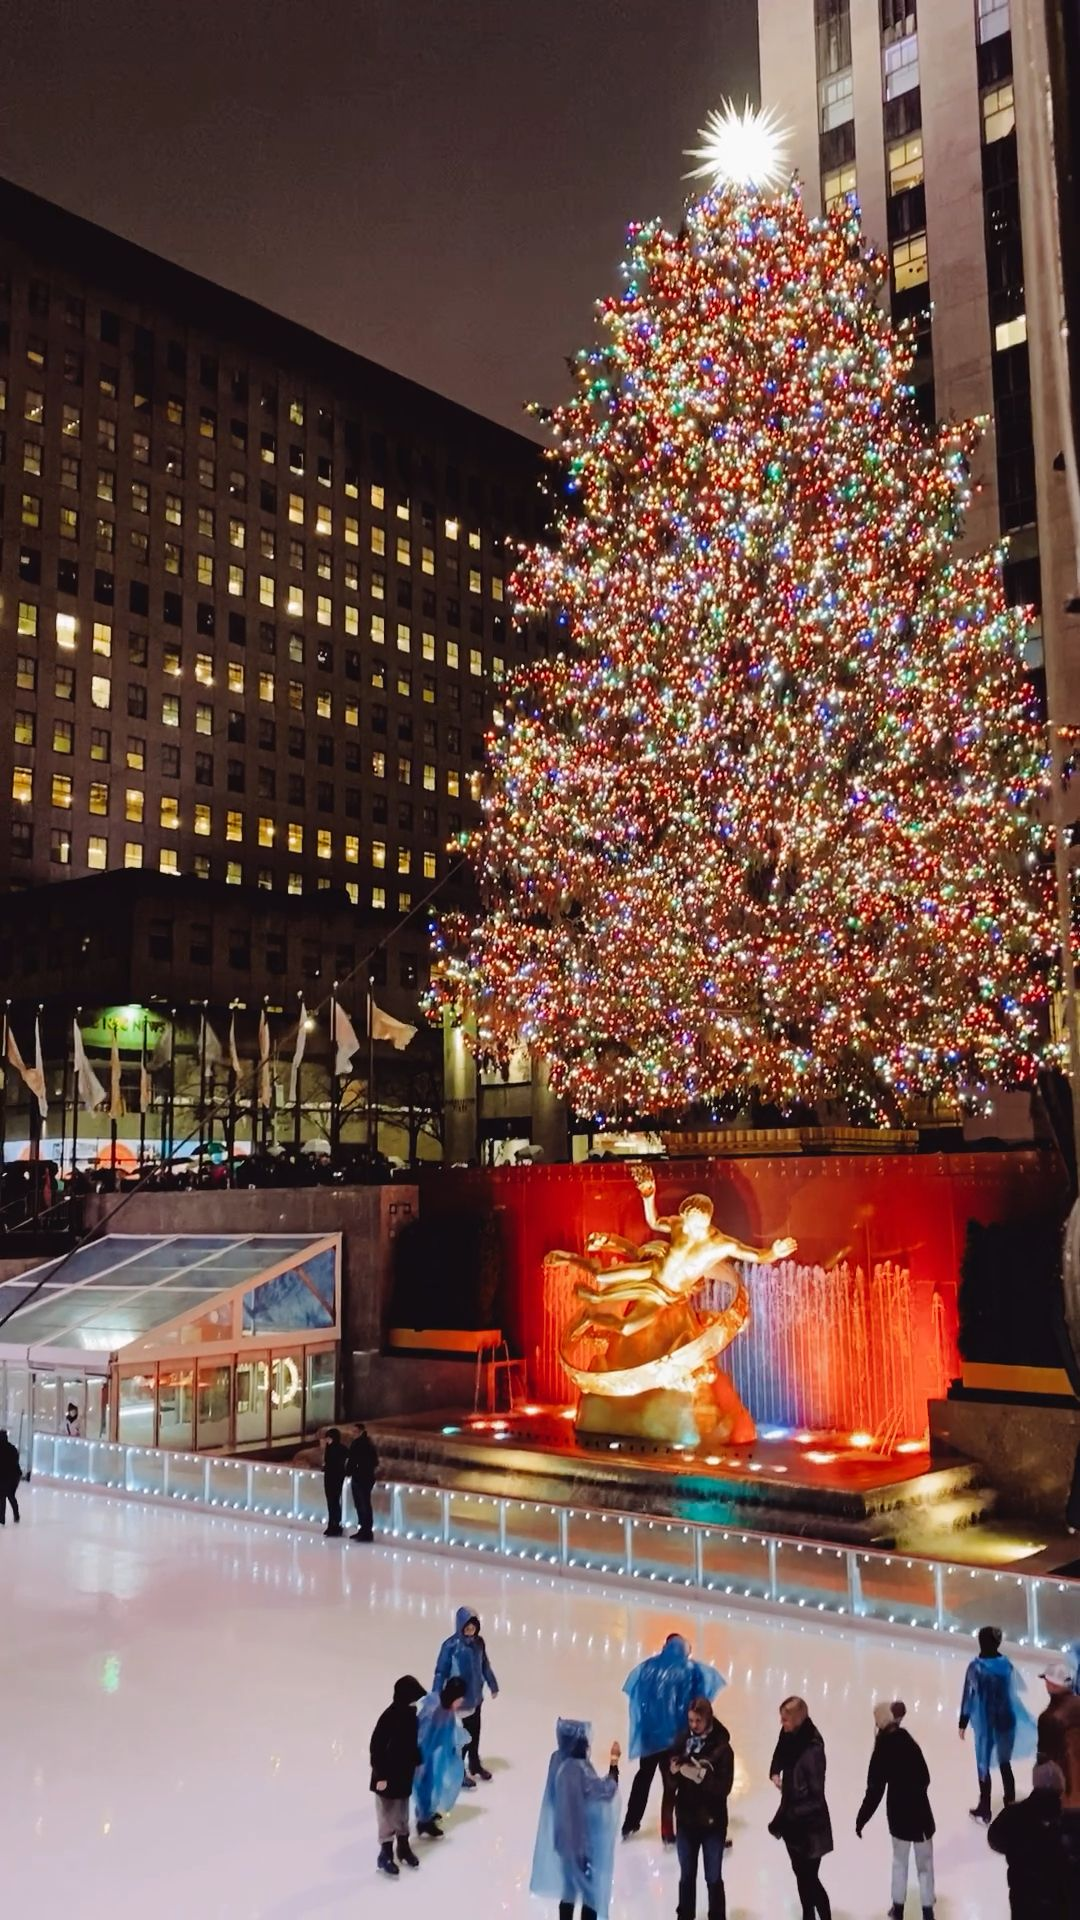 One of the best things to do in NYC during the holidays is ice skating in Rockefeller Plaza || What to do in NYC || Central Park || Things to do in NYC || Winter in NYC